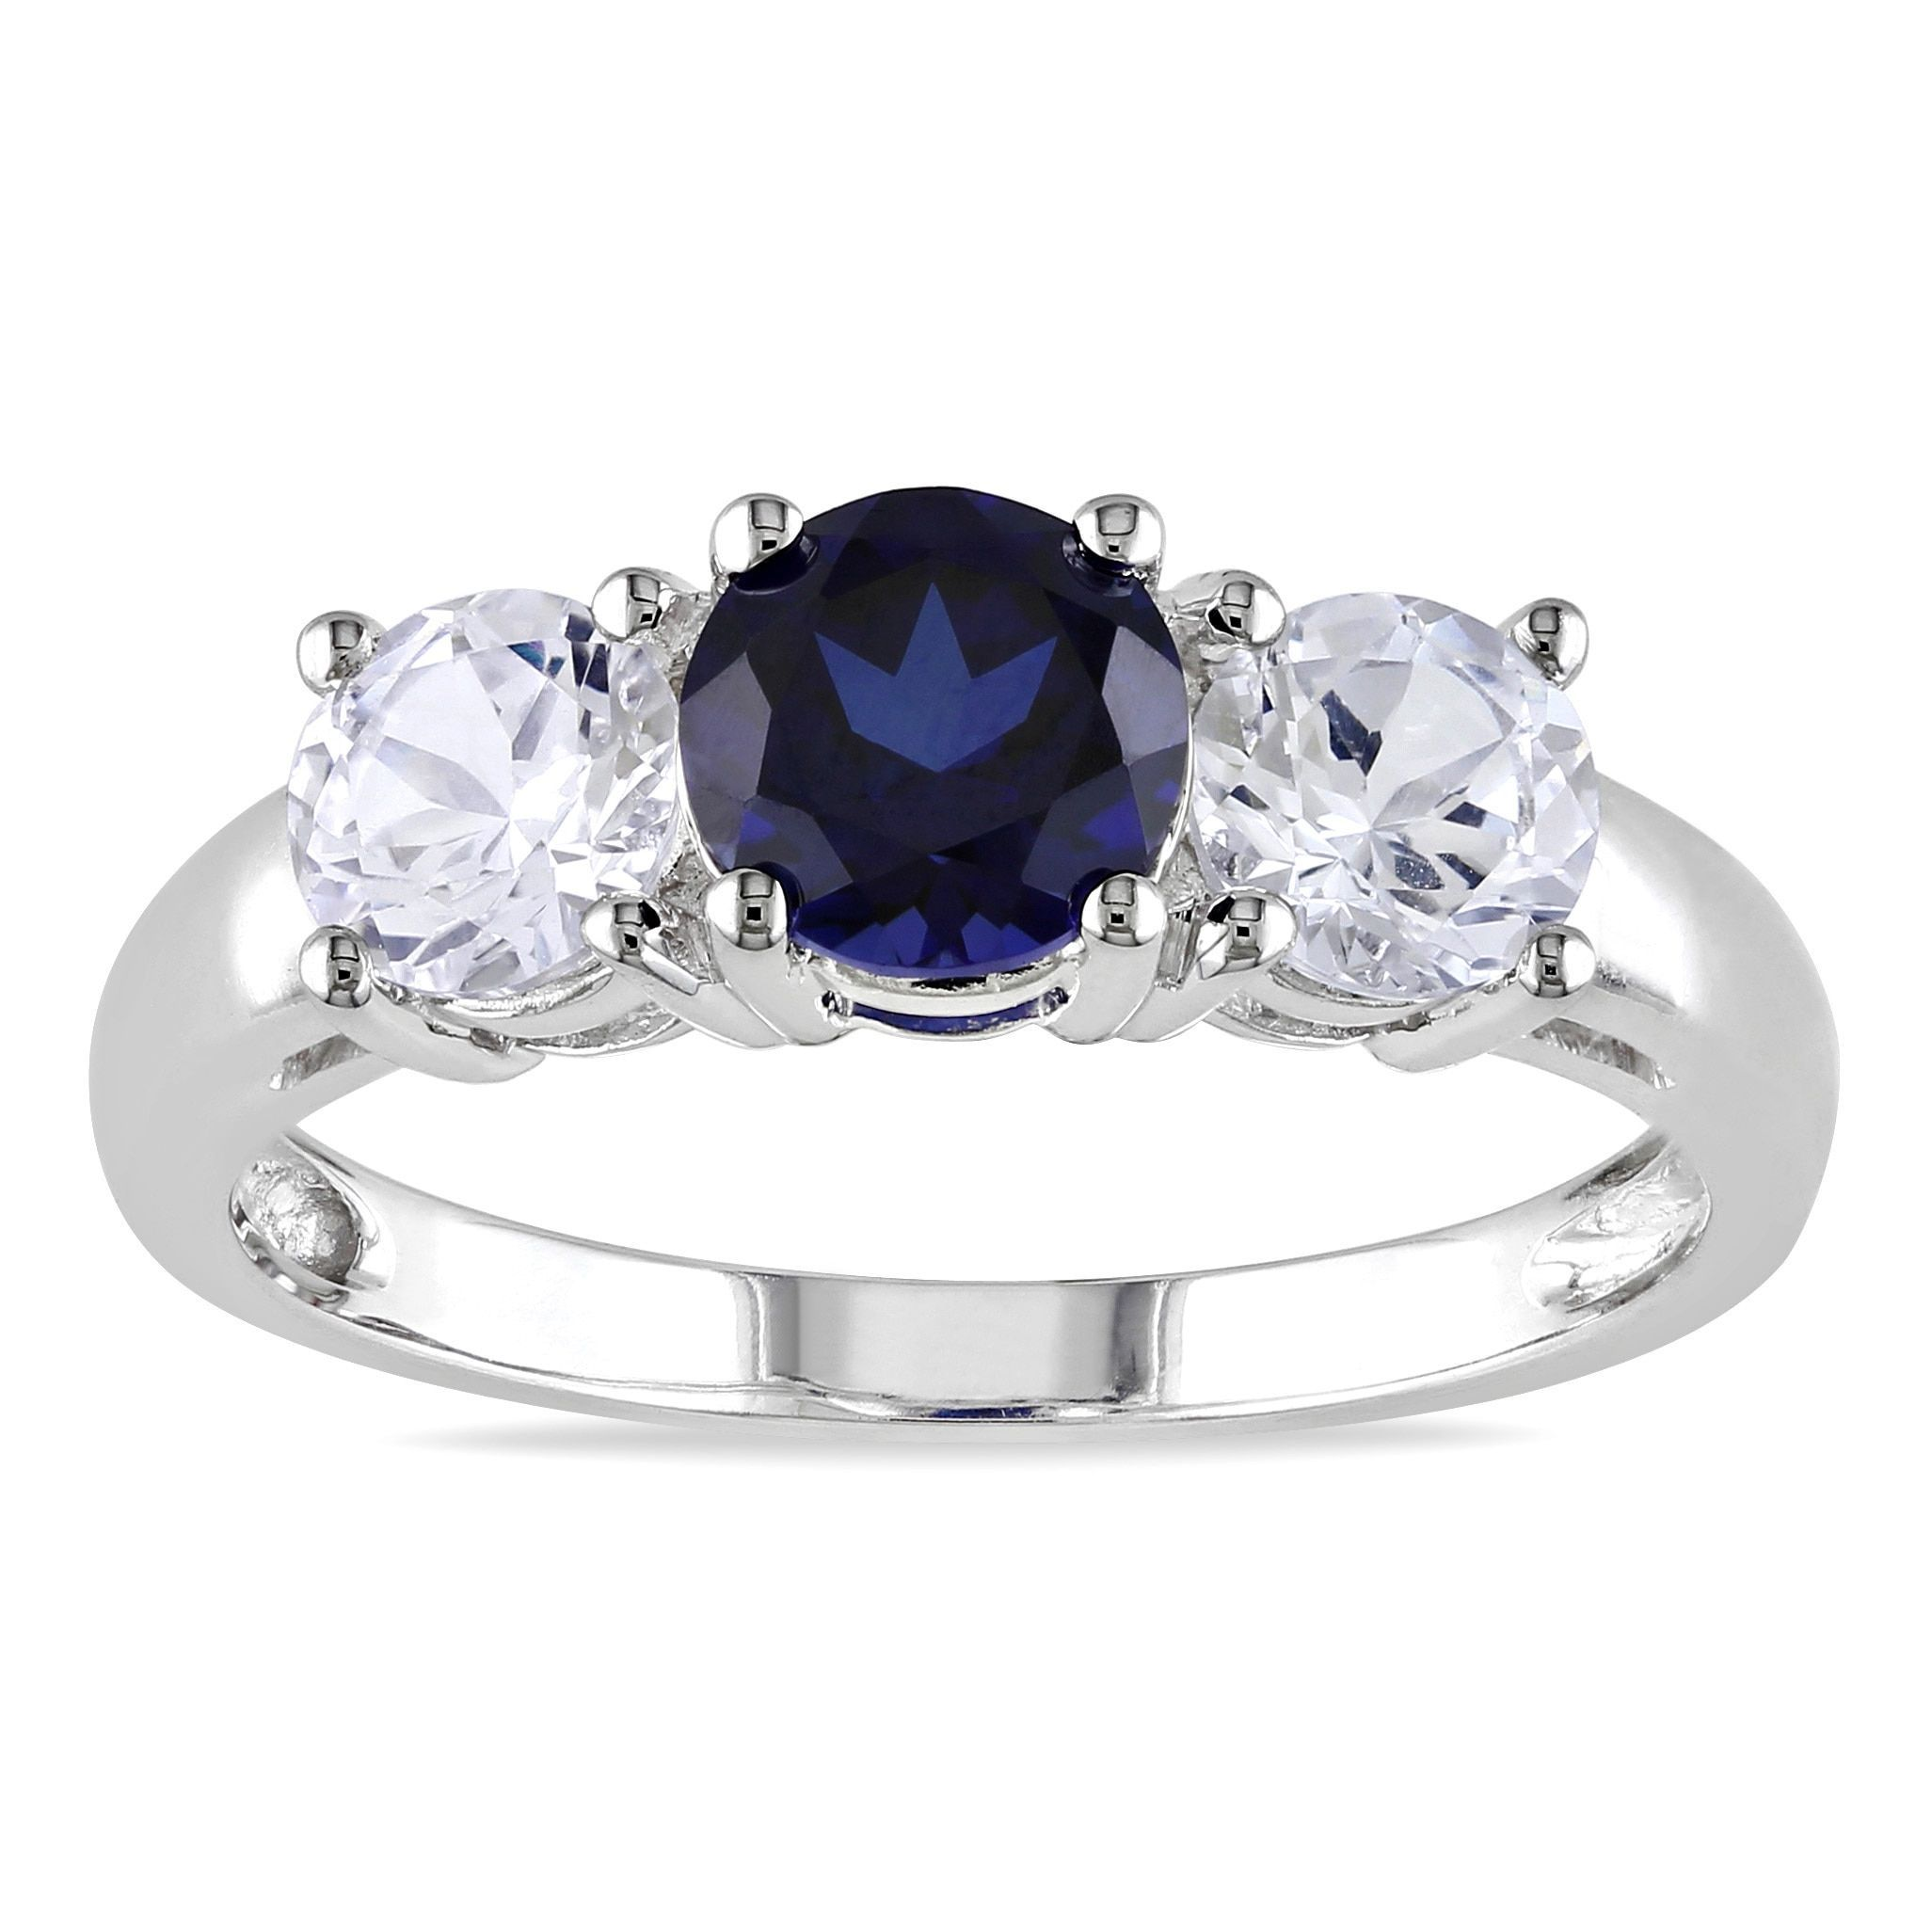 Miadora 10k White Gold Created Blue And White Sapphire 3 Stone Ring Size 5 White Gold Ring Band White Gold Rings Blue Sapphire Rings